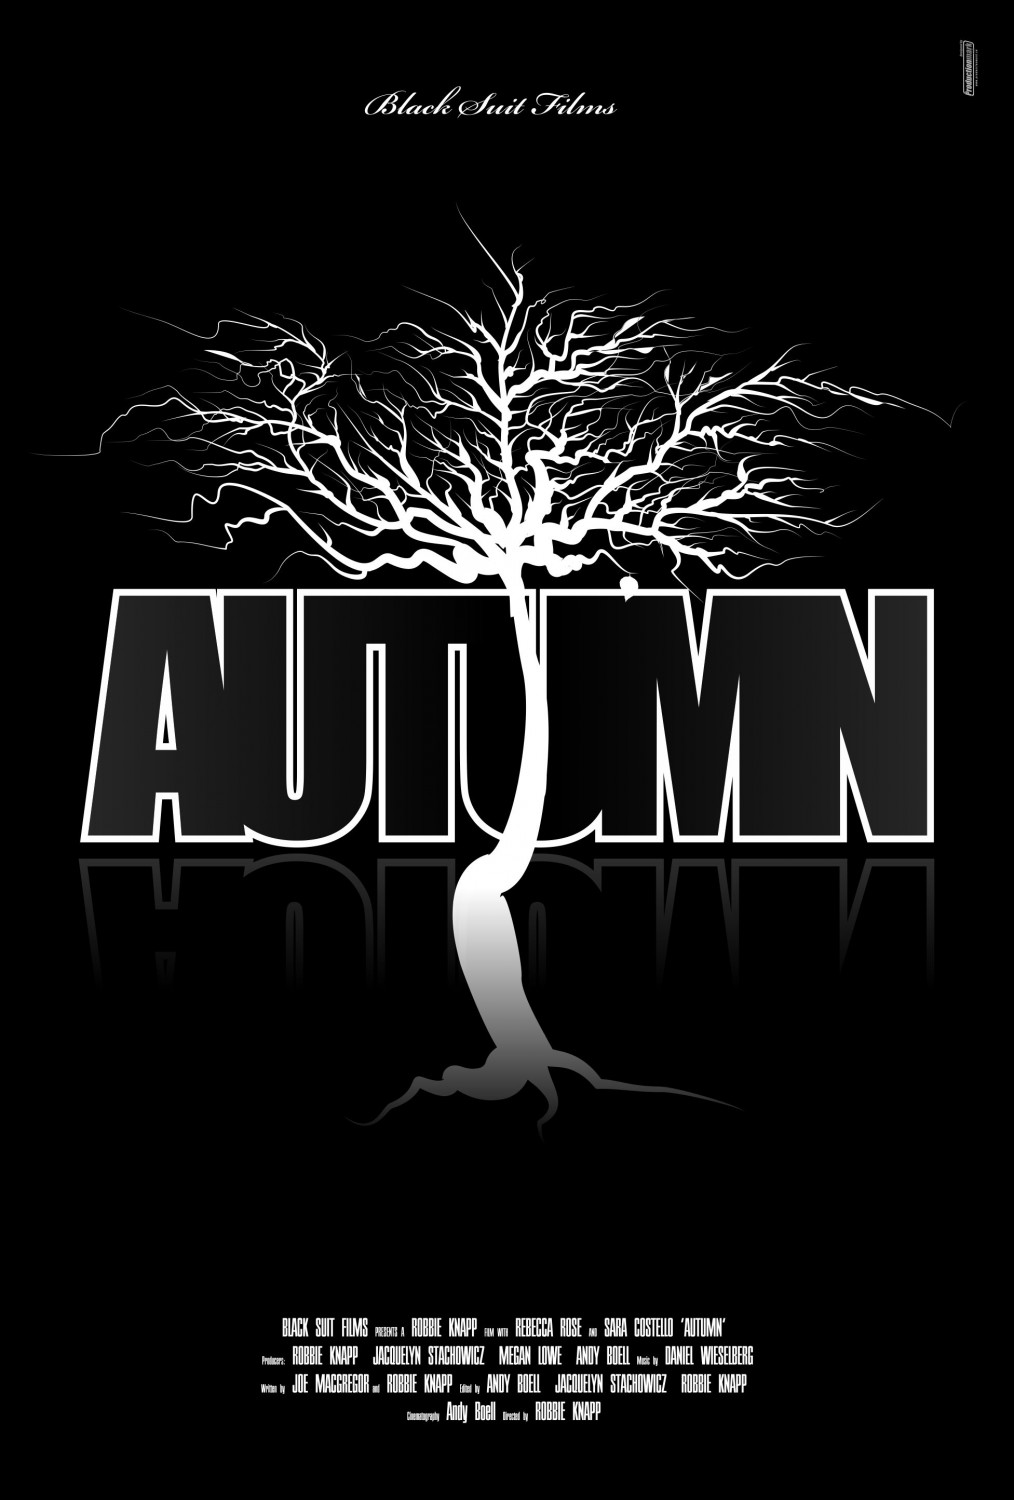 Productionmark-Services-Film-Poster-Design-Short-Film-Autumn